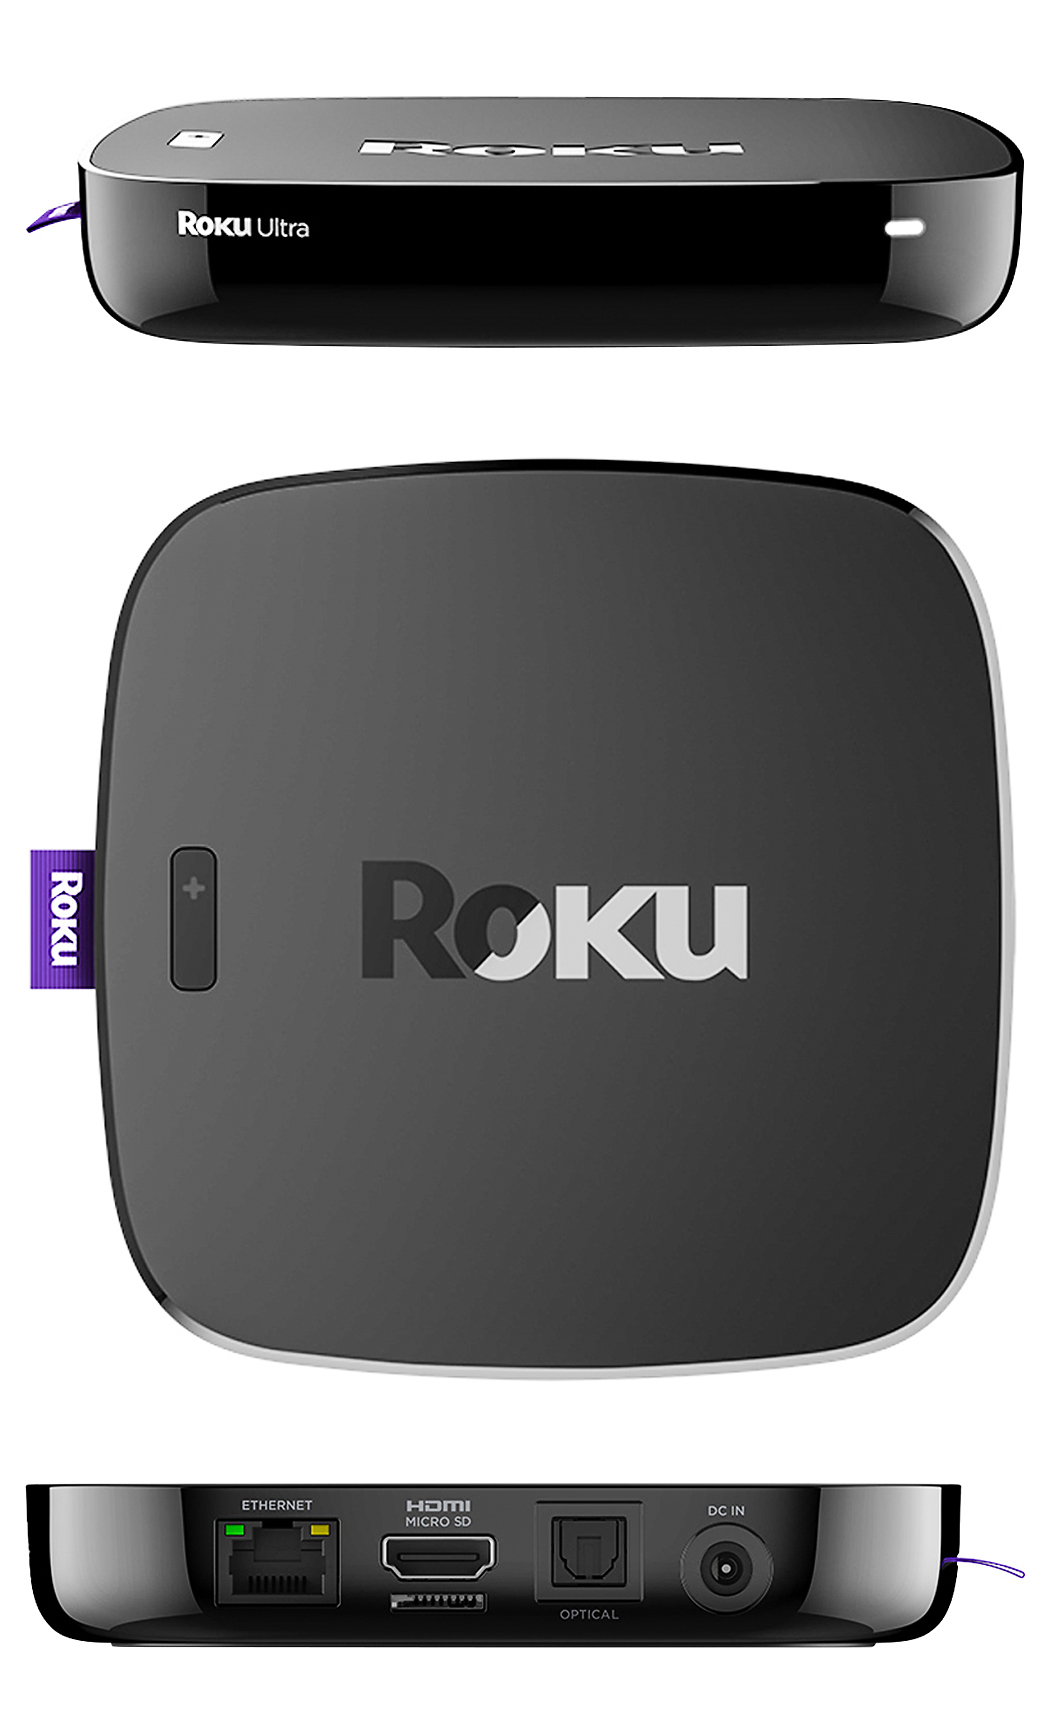 Roku Box: These Are Photos Of Roku's Next Lineup Of Streaming Boxes